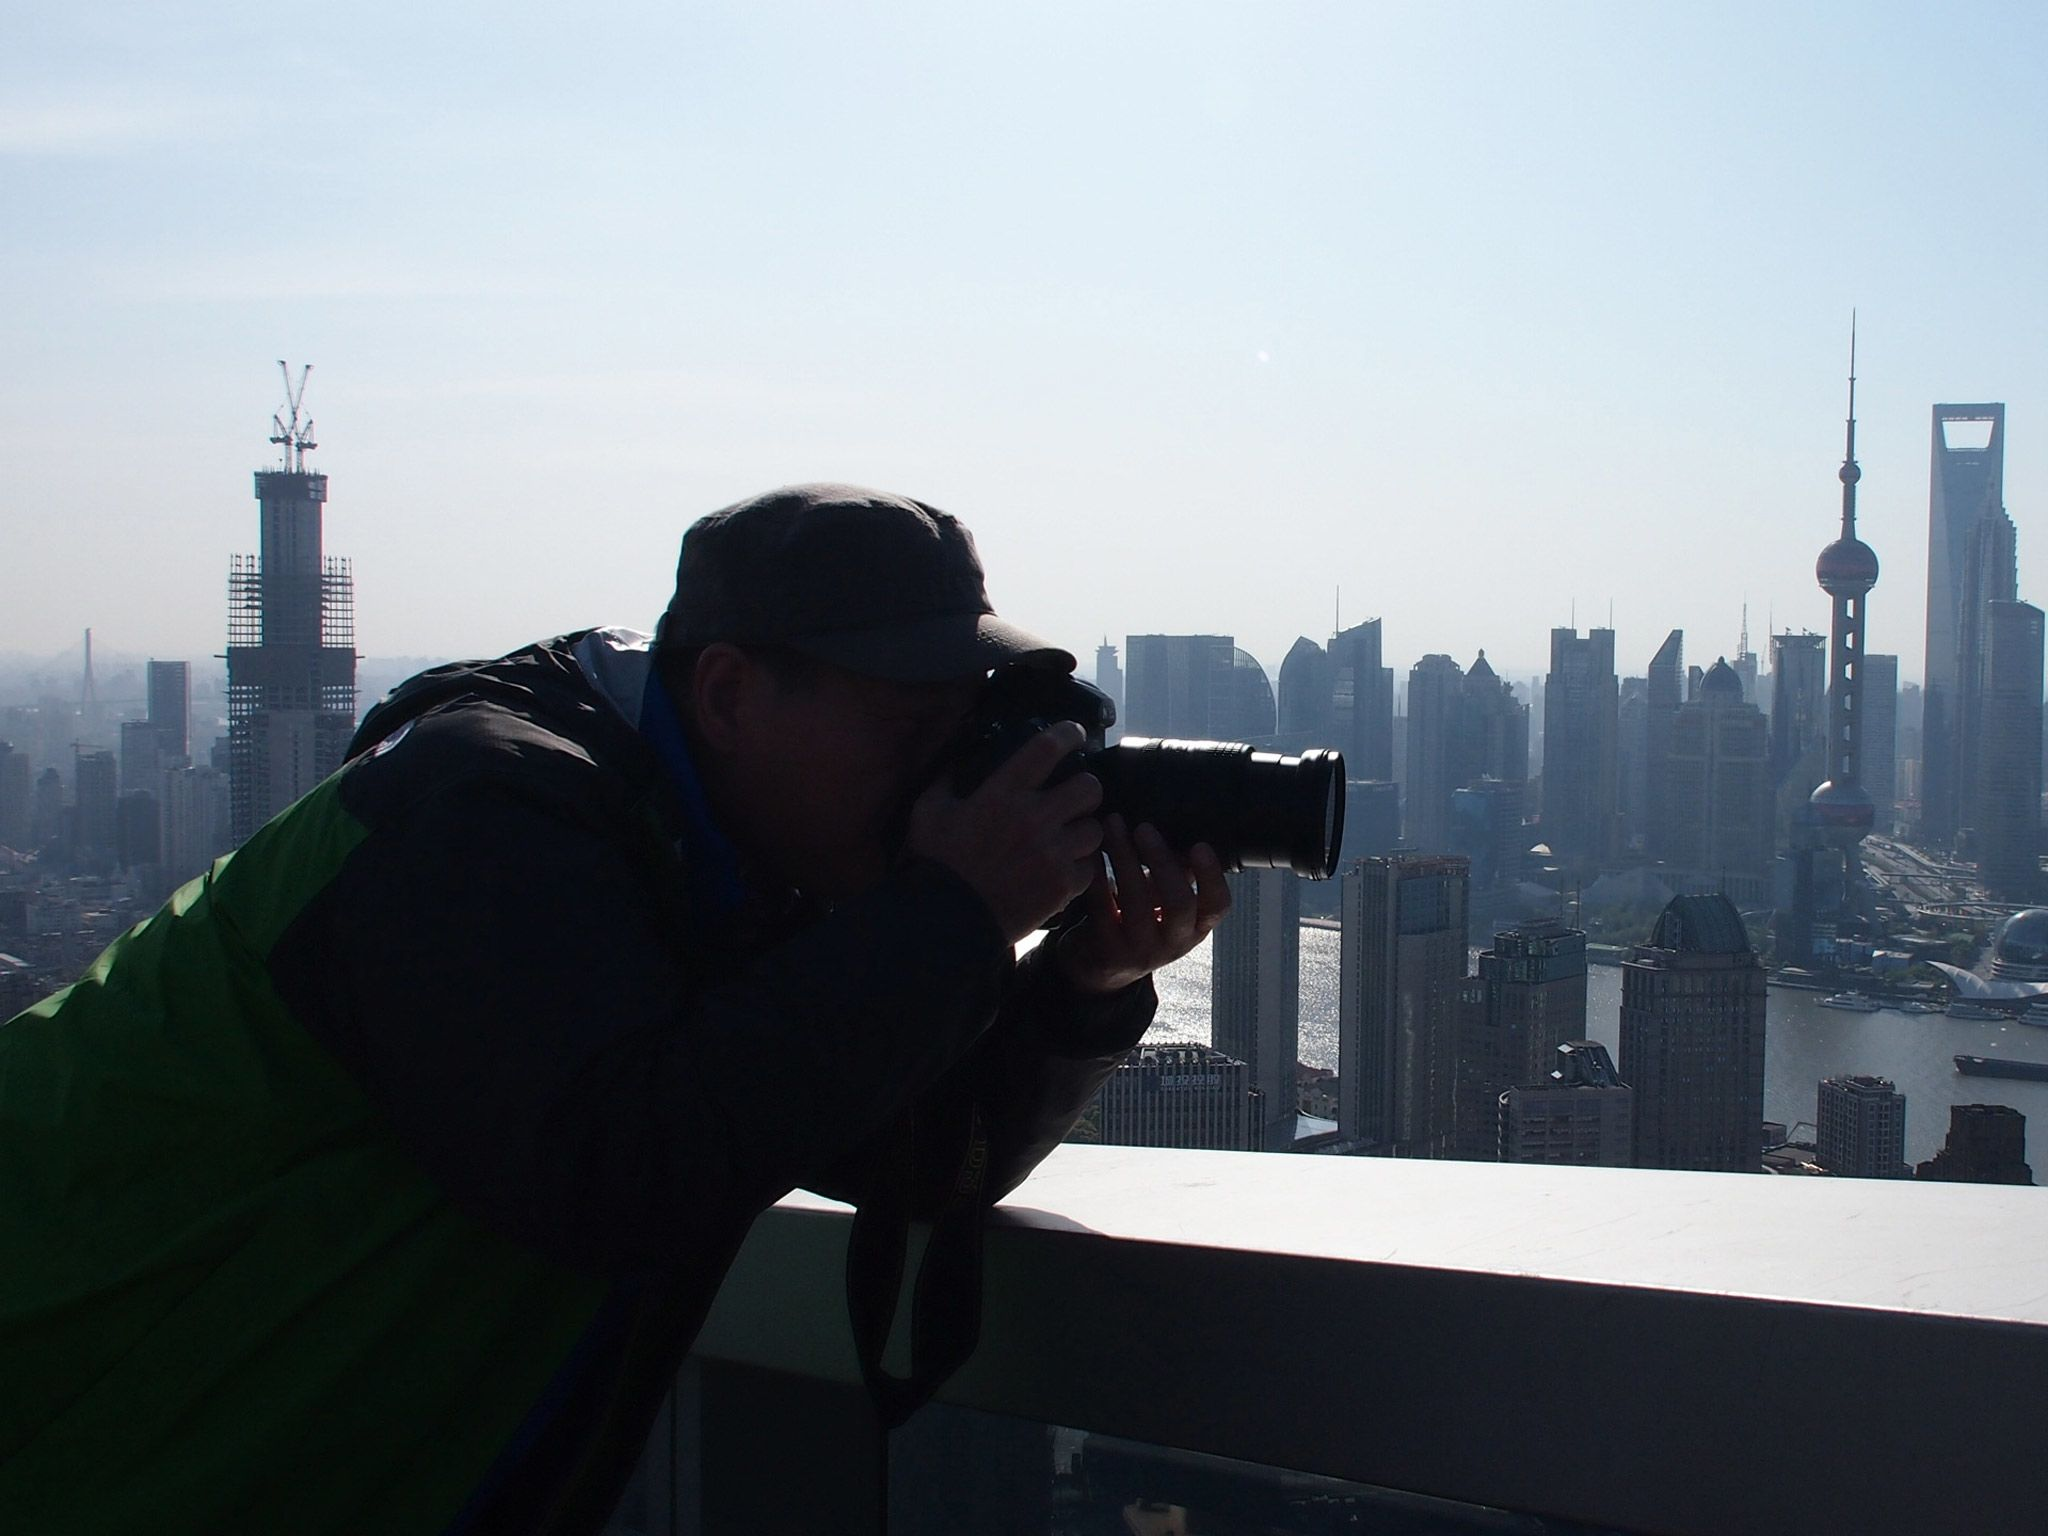 Shanghai: Photographer Zheng Xianzhang takes a photo from the rooftop of a skyscraper. [Photo of the day - July, 2015]